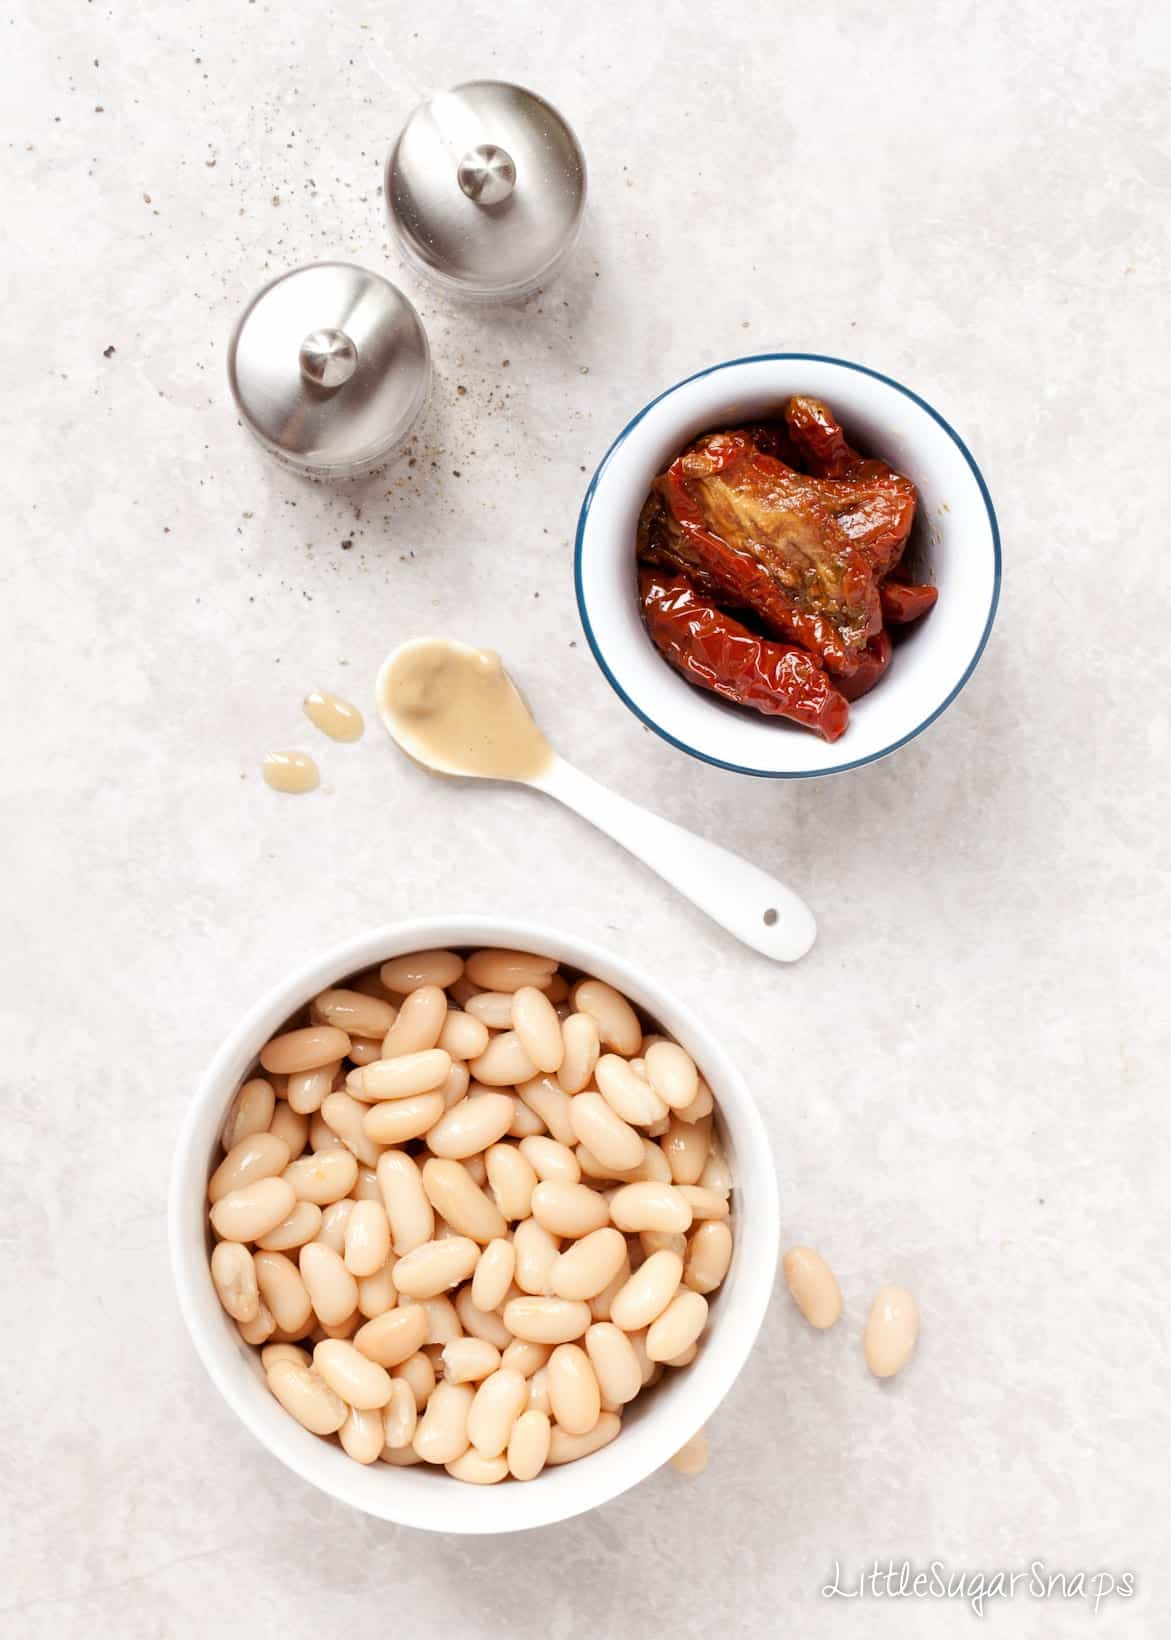 White beans and sundried tomatoes in bowls.